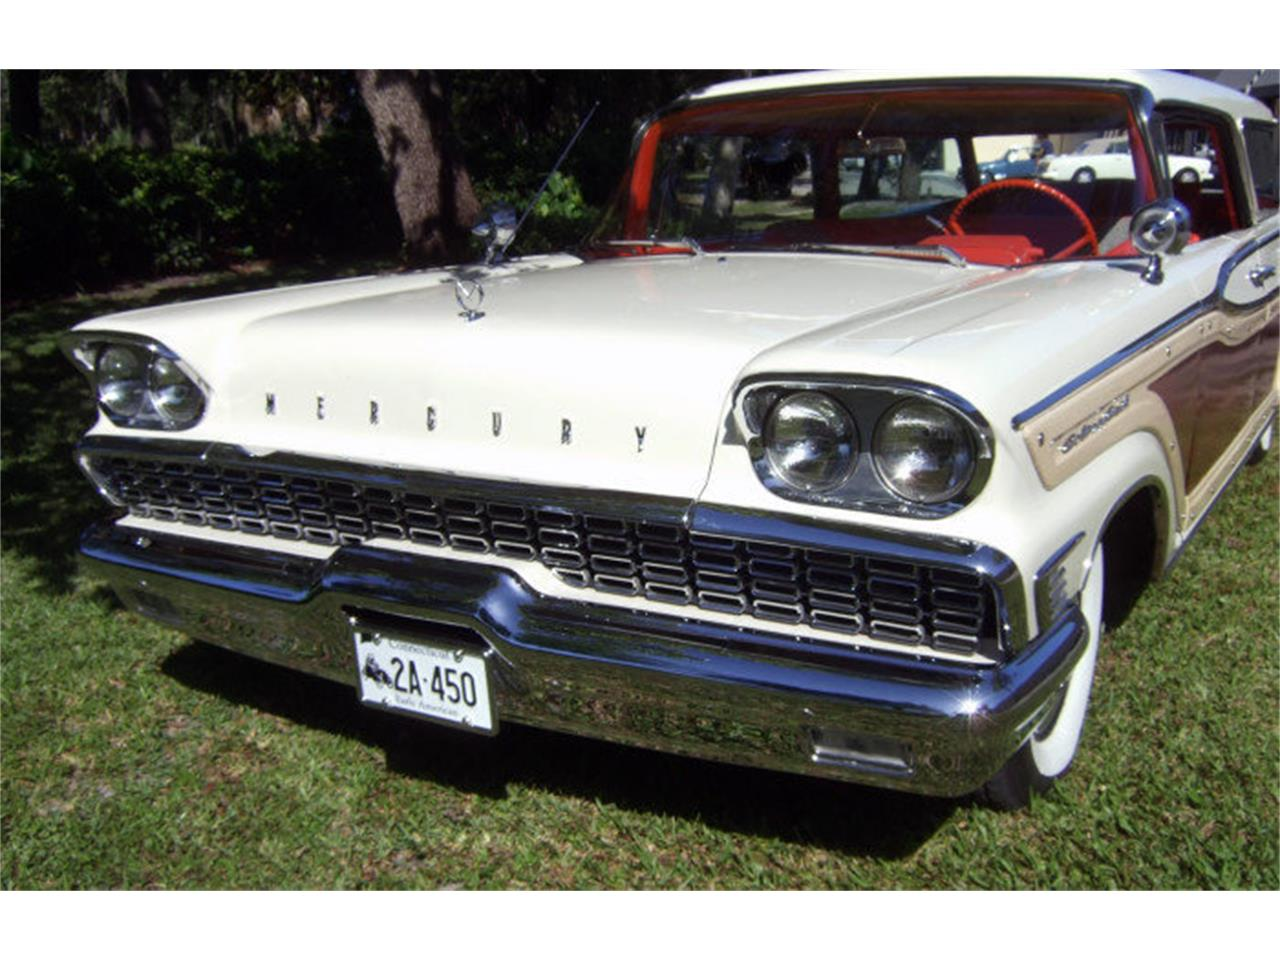 Large Picture of Classic '59 Mercury Colony Park located in Punta Gorda Florida Auction Vehicle Offered by Premier Auction Group - ONCV